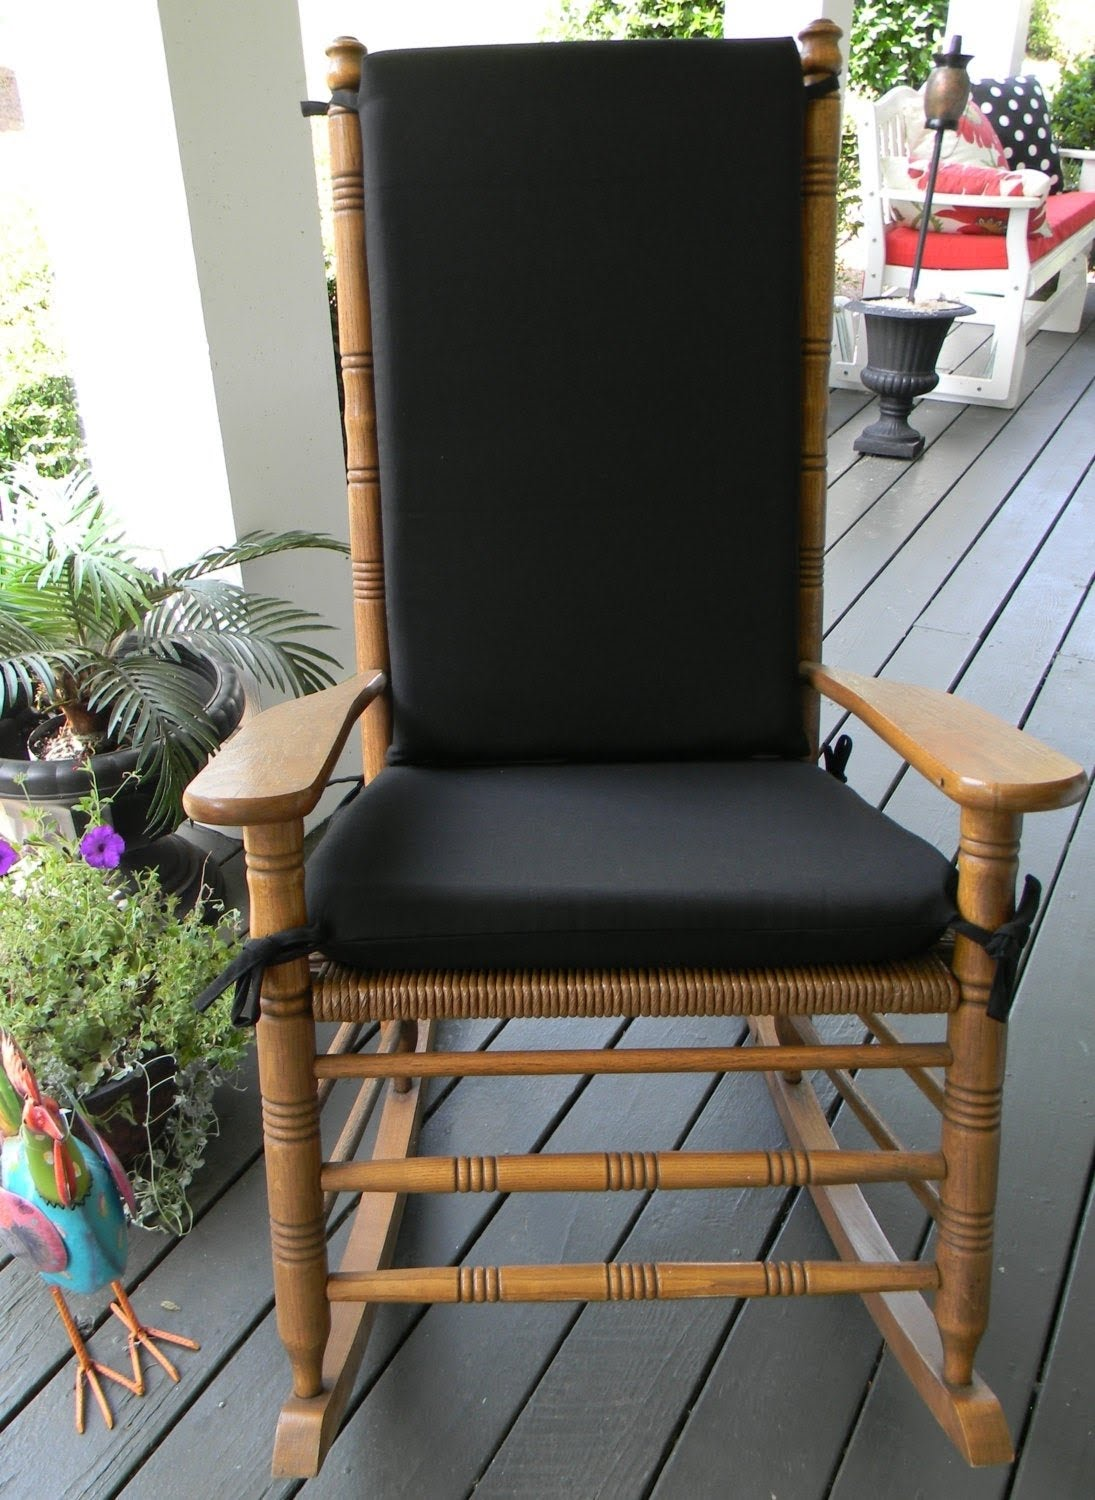 Outdoor Rocking Chair Cushions You Ll, Outdoor Furniture Rocking Chair Cushions